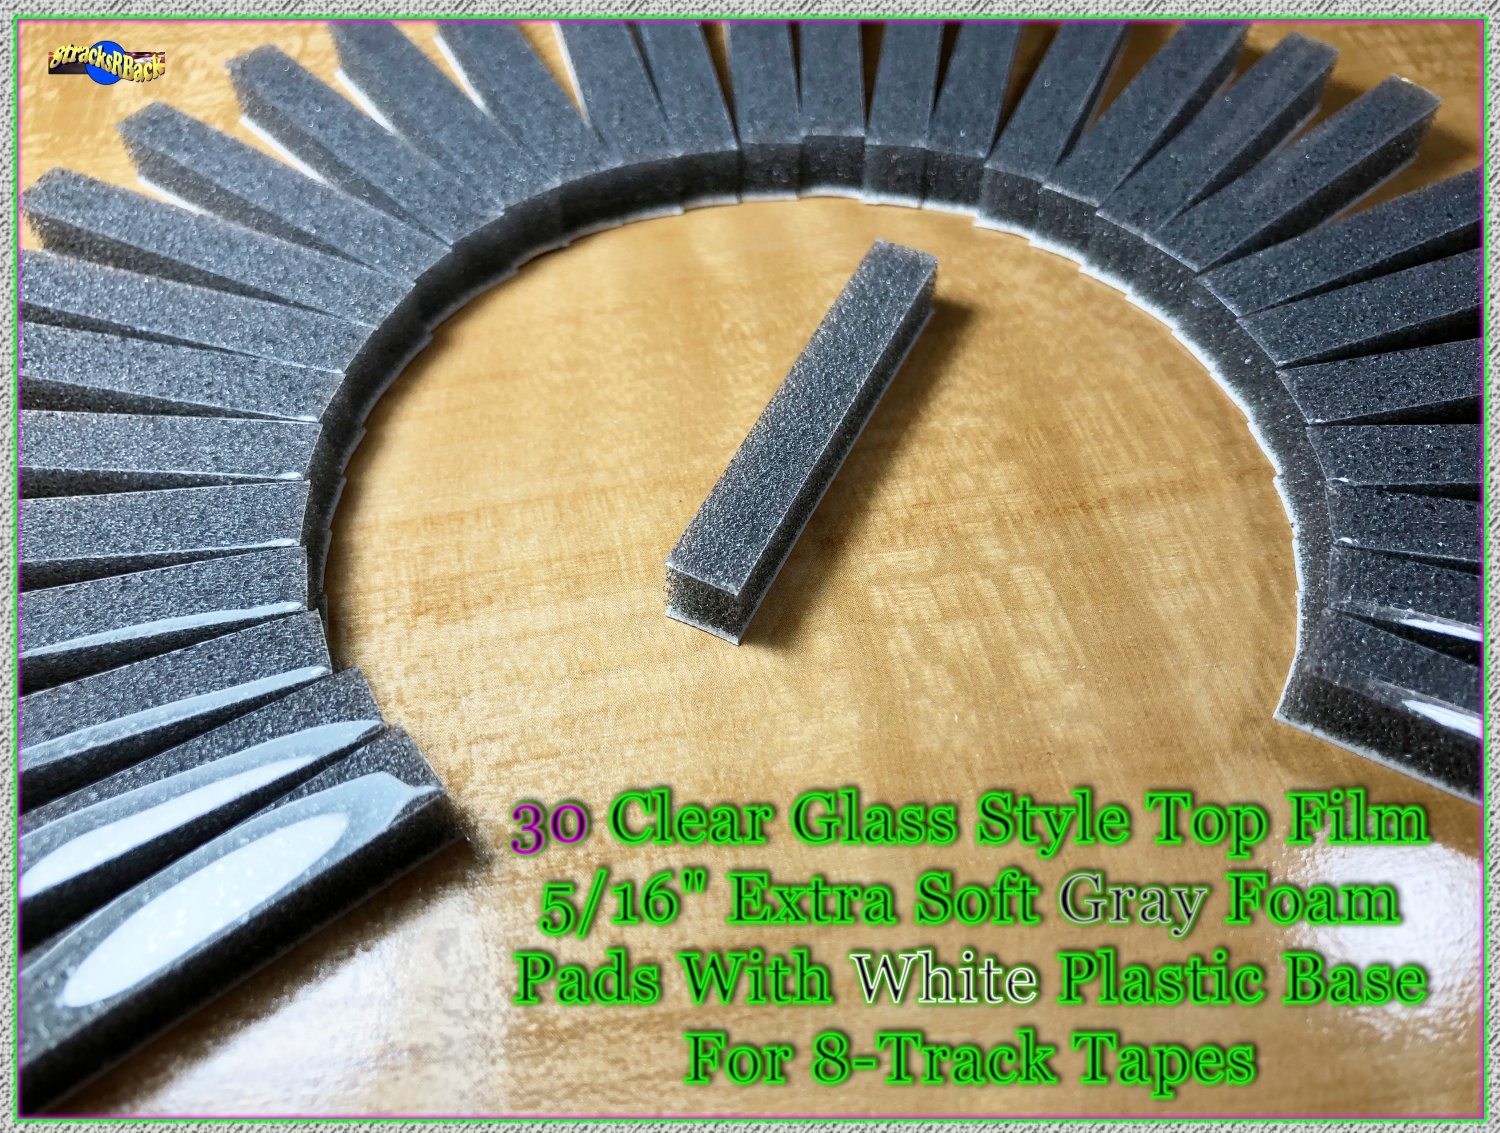 Restore Your Own - 30 Clear Glass Style Top Soft Gray Foam Pads For 8-Track Tape